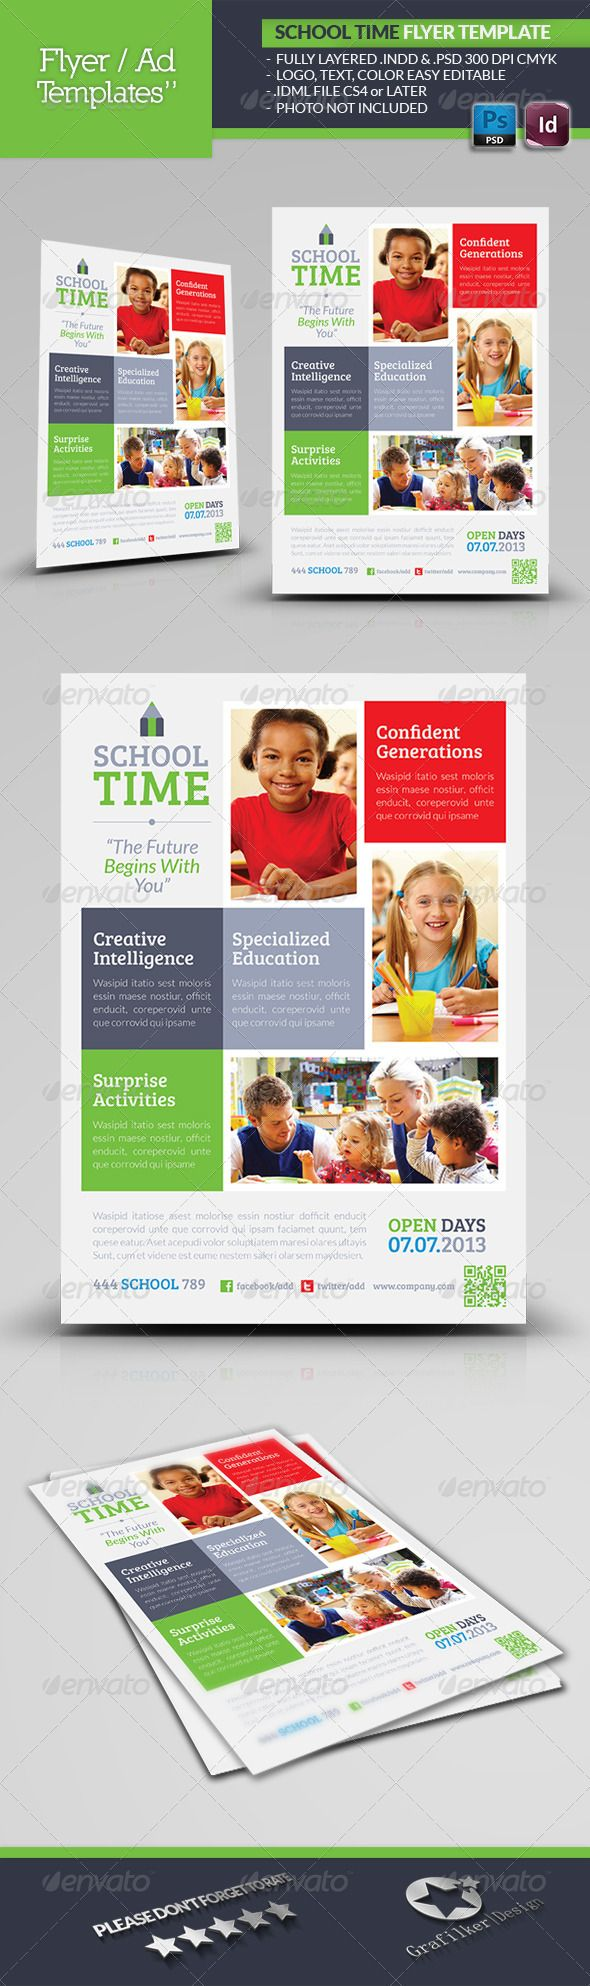 School Time Flyer Template #GraphicRiver School Time Flyer Template Fully layered INDD Fully layered PSD 300 Dpi, CMYK IDML format open Indesign CS4 or later Completely editable, print ready Text/Font or Color can be altered as needed All Image are in vector format, so can customise easily Photos are not included in the file Font File: Lato Font: .fontsquirrel /fonts/lato Bree-serif: .fontsquirrel /fonts/bree-serif Help.txt file Created: 18June13 GraphicsFilesIncluded: PhotoshopPSD…